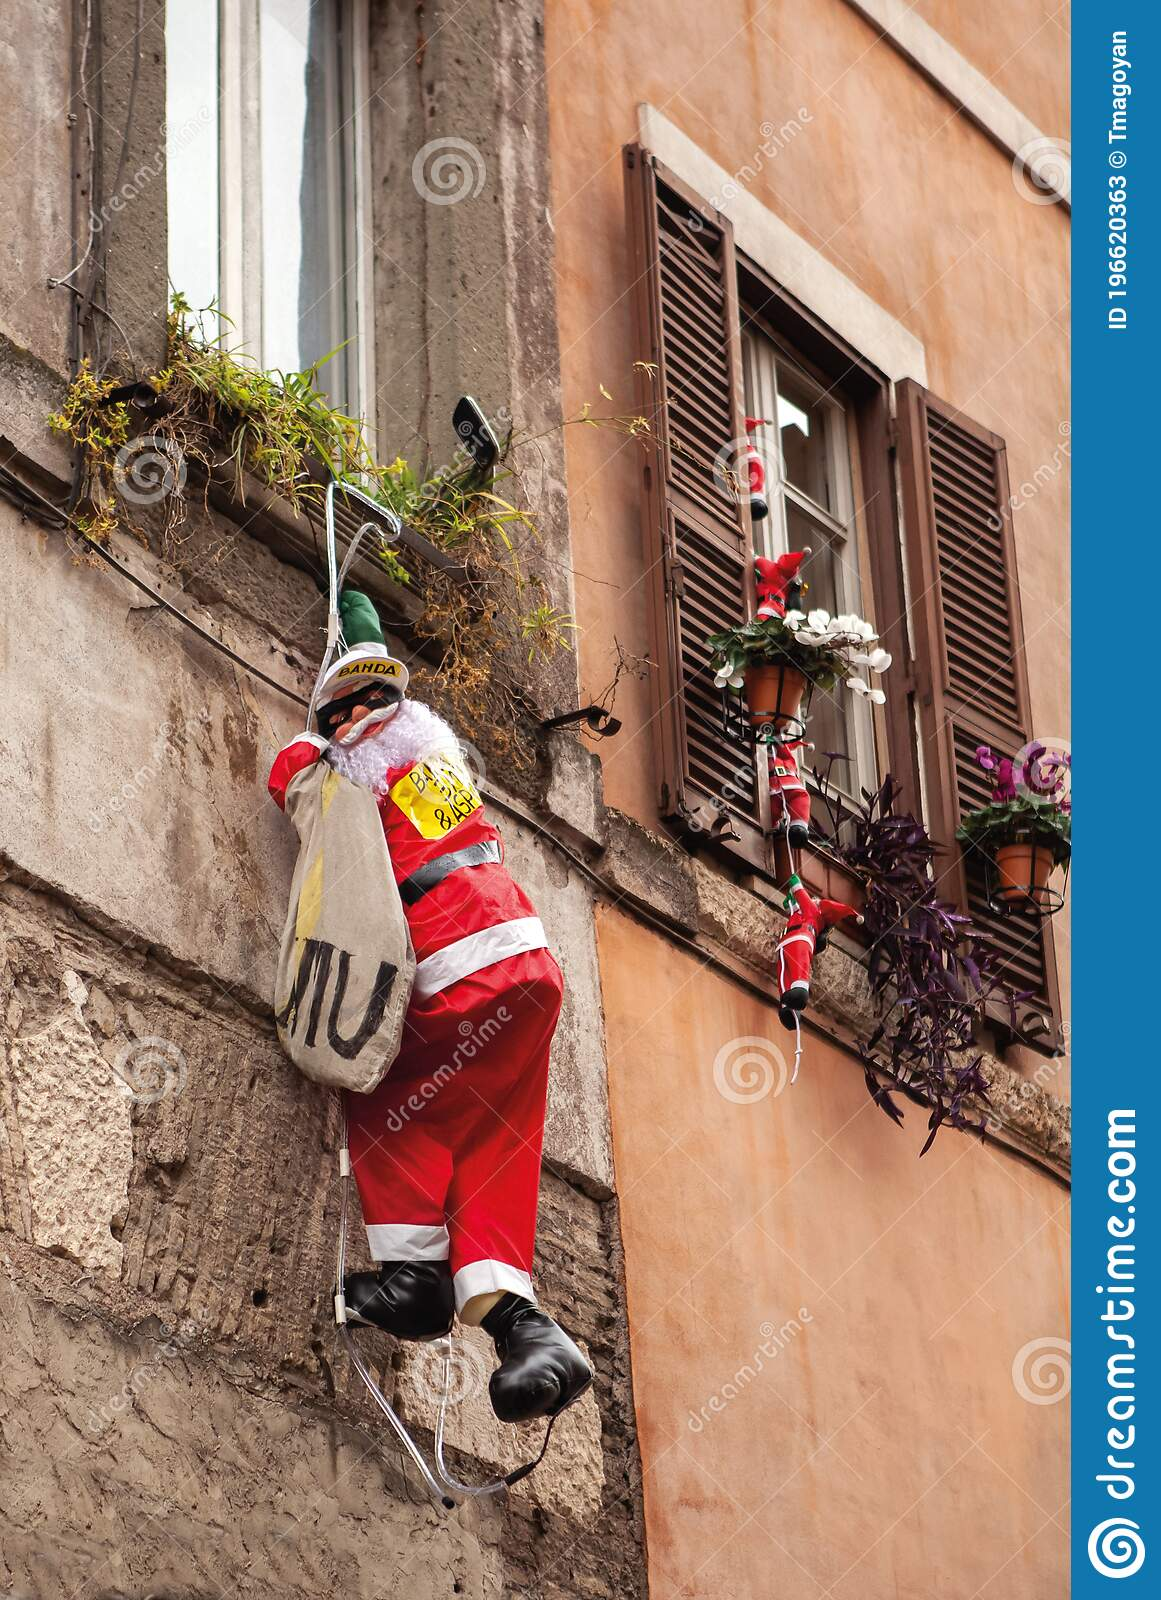 Decor In Form Of Santa Claus Hangs On Wall Of House Funny Traditional Christmas Decoration Toy Santa With Bag Of Gifts Climbing Editorial Stock Photo Image Of Happy Ladder 196620363